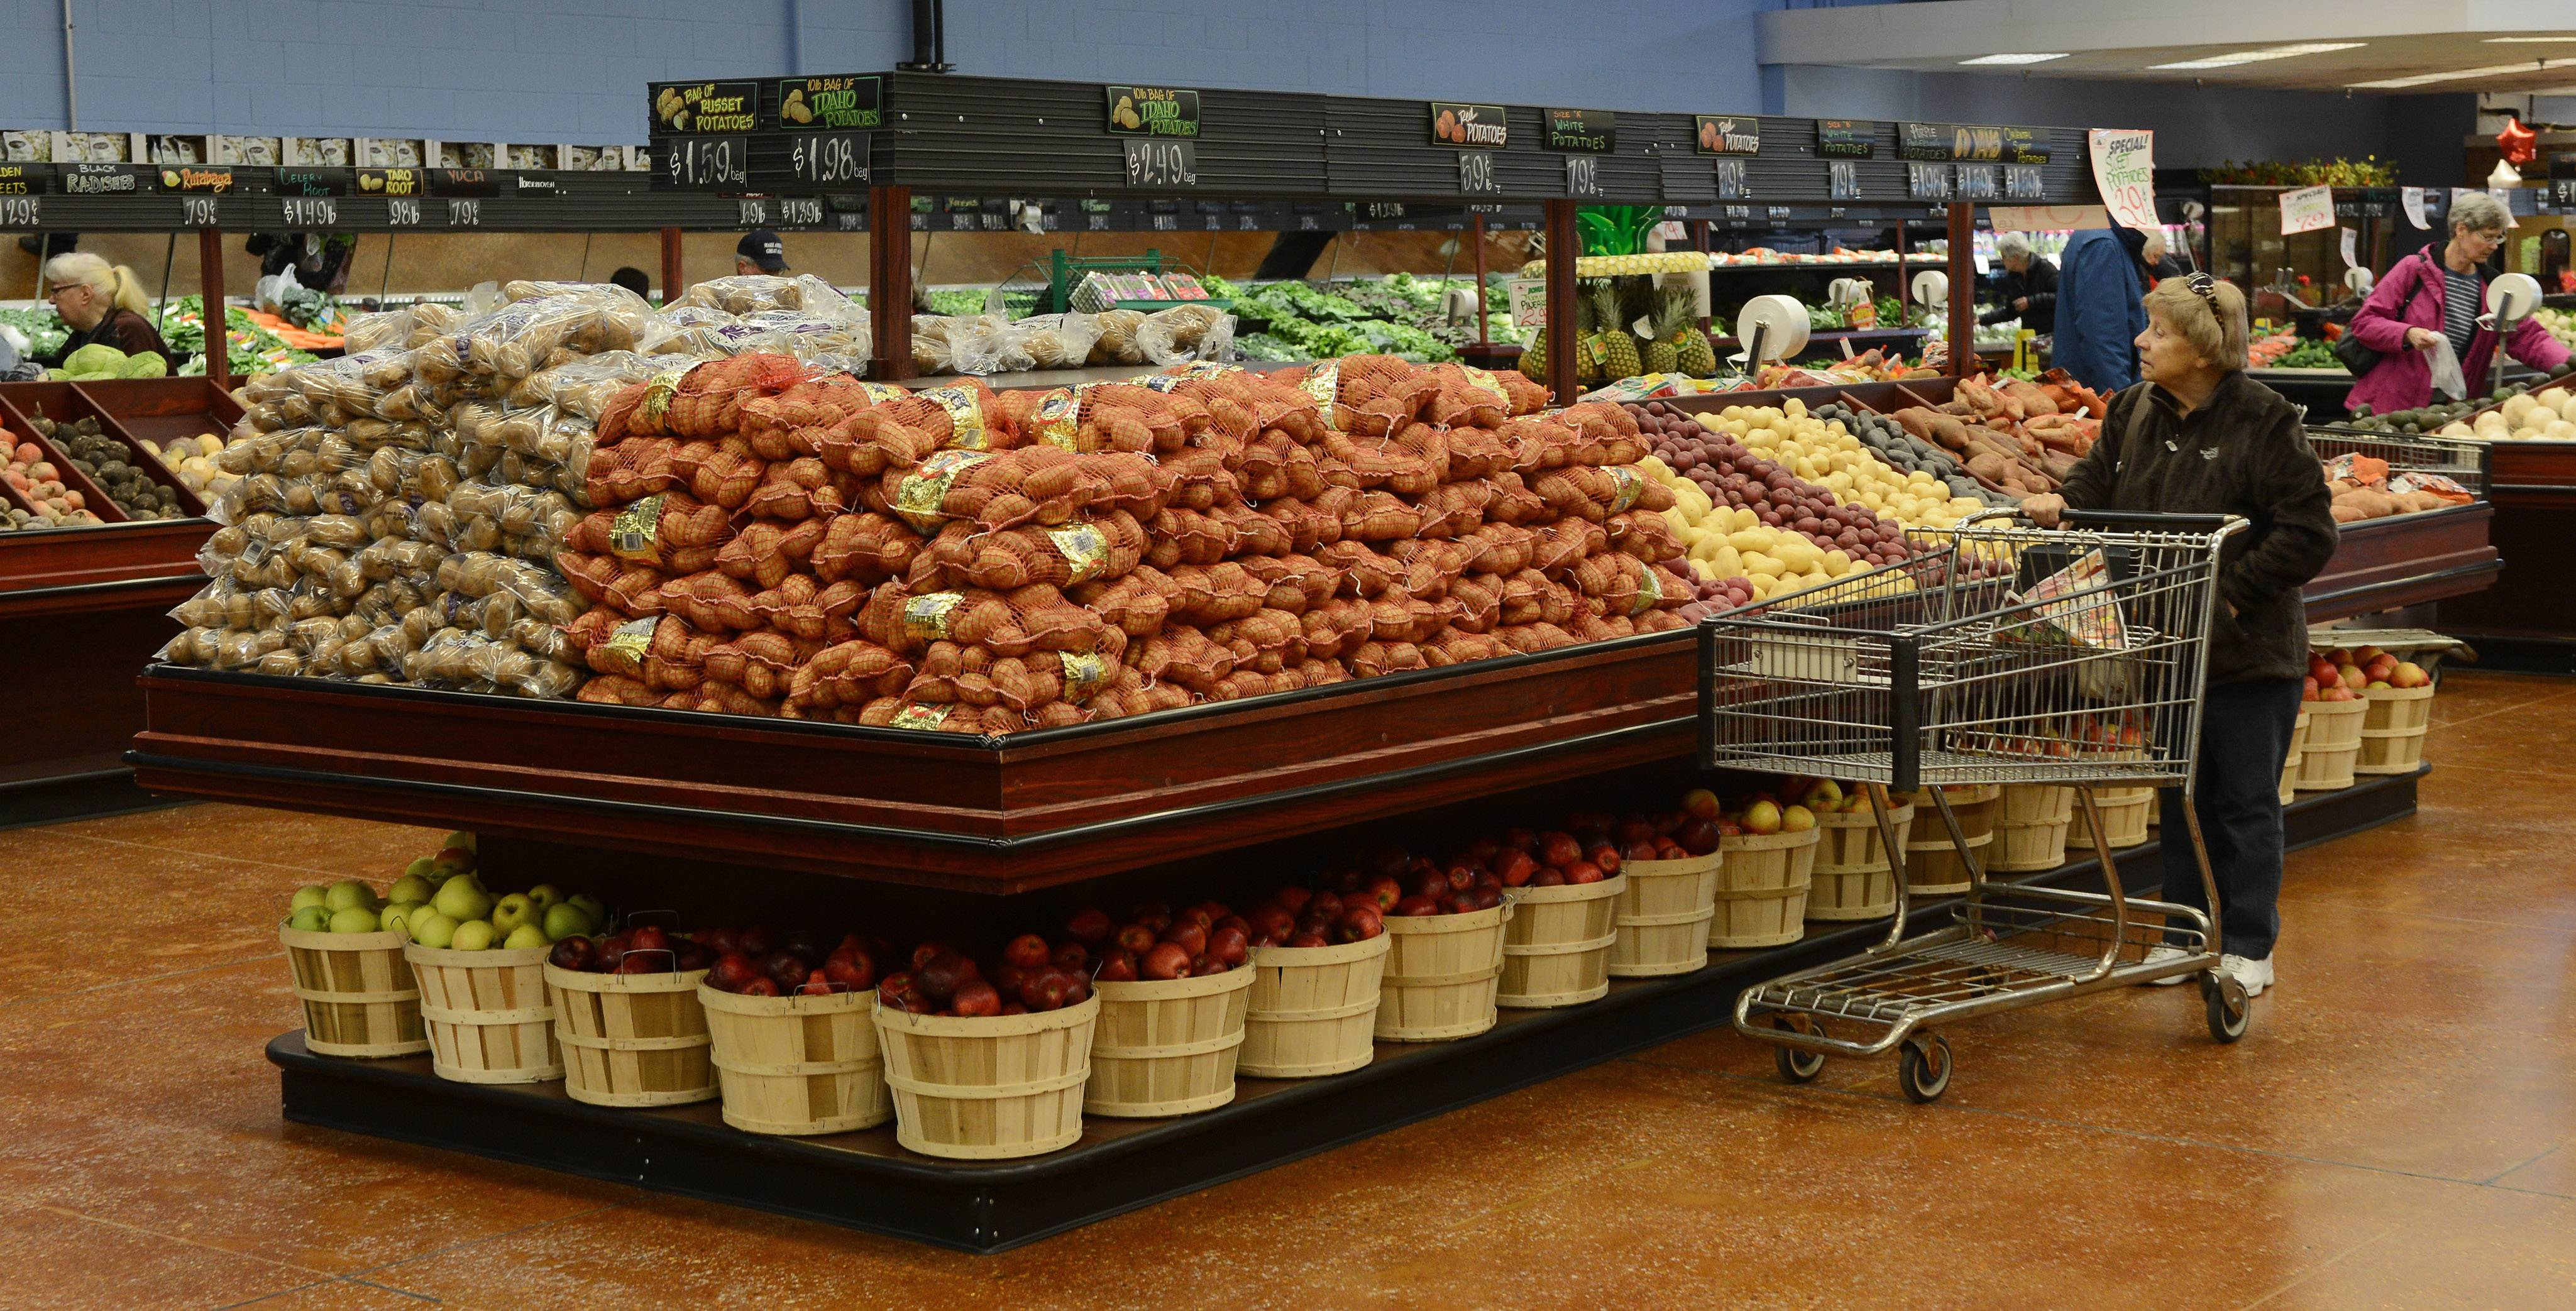 Joe Caputo & Sons will close its Elk Grove Village store on Sunday, just days after a federal lawsuit accused the grocery chain of not paying for $3.6 million worth of produce.